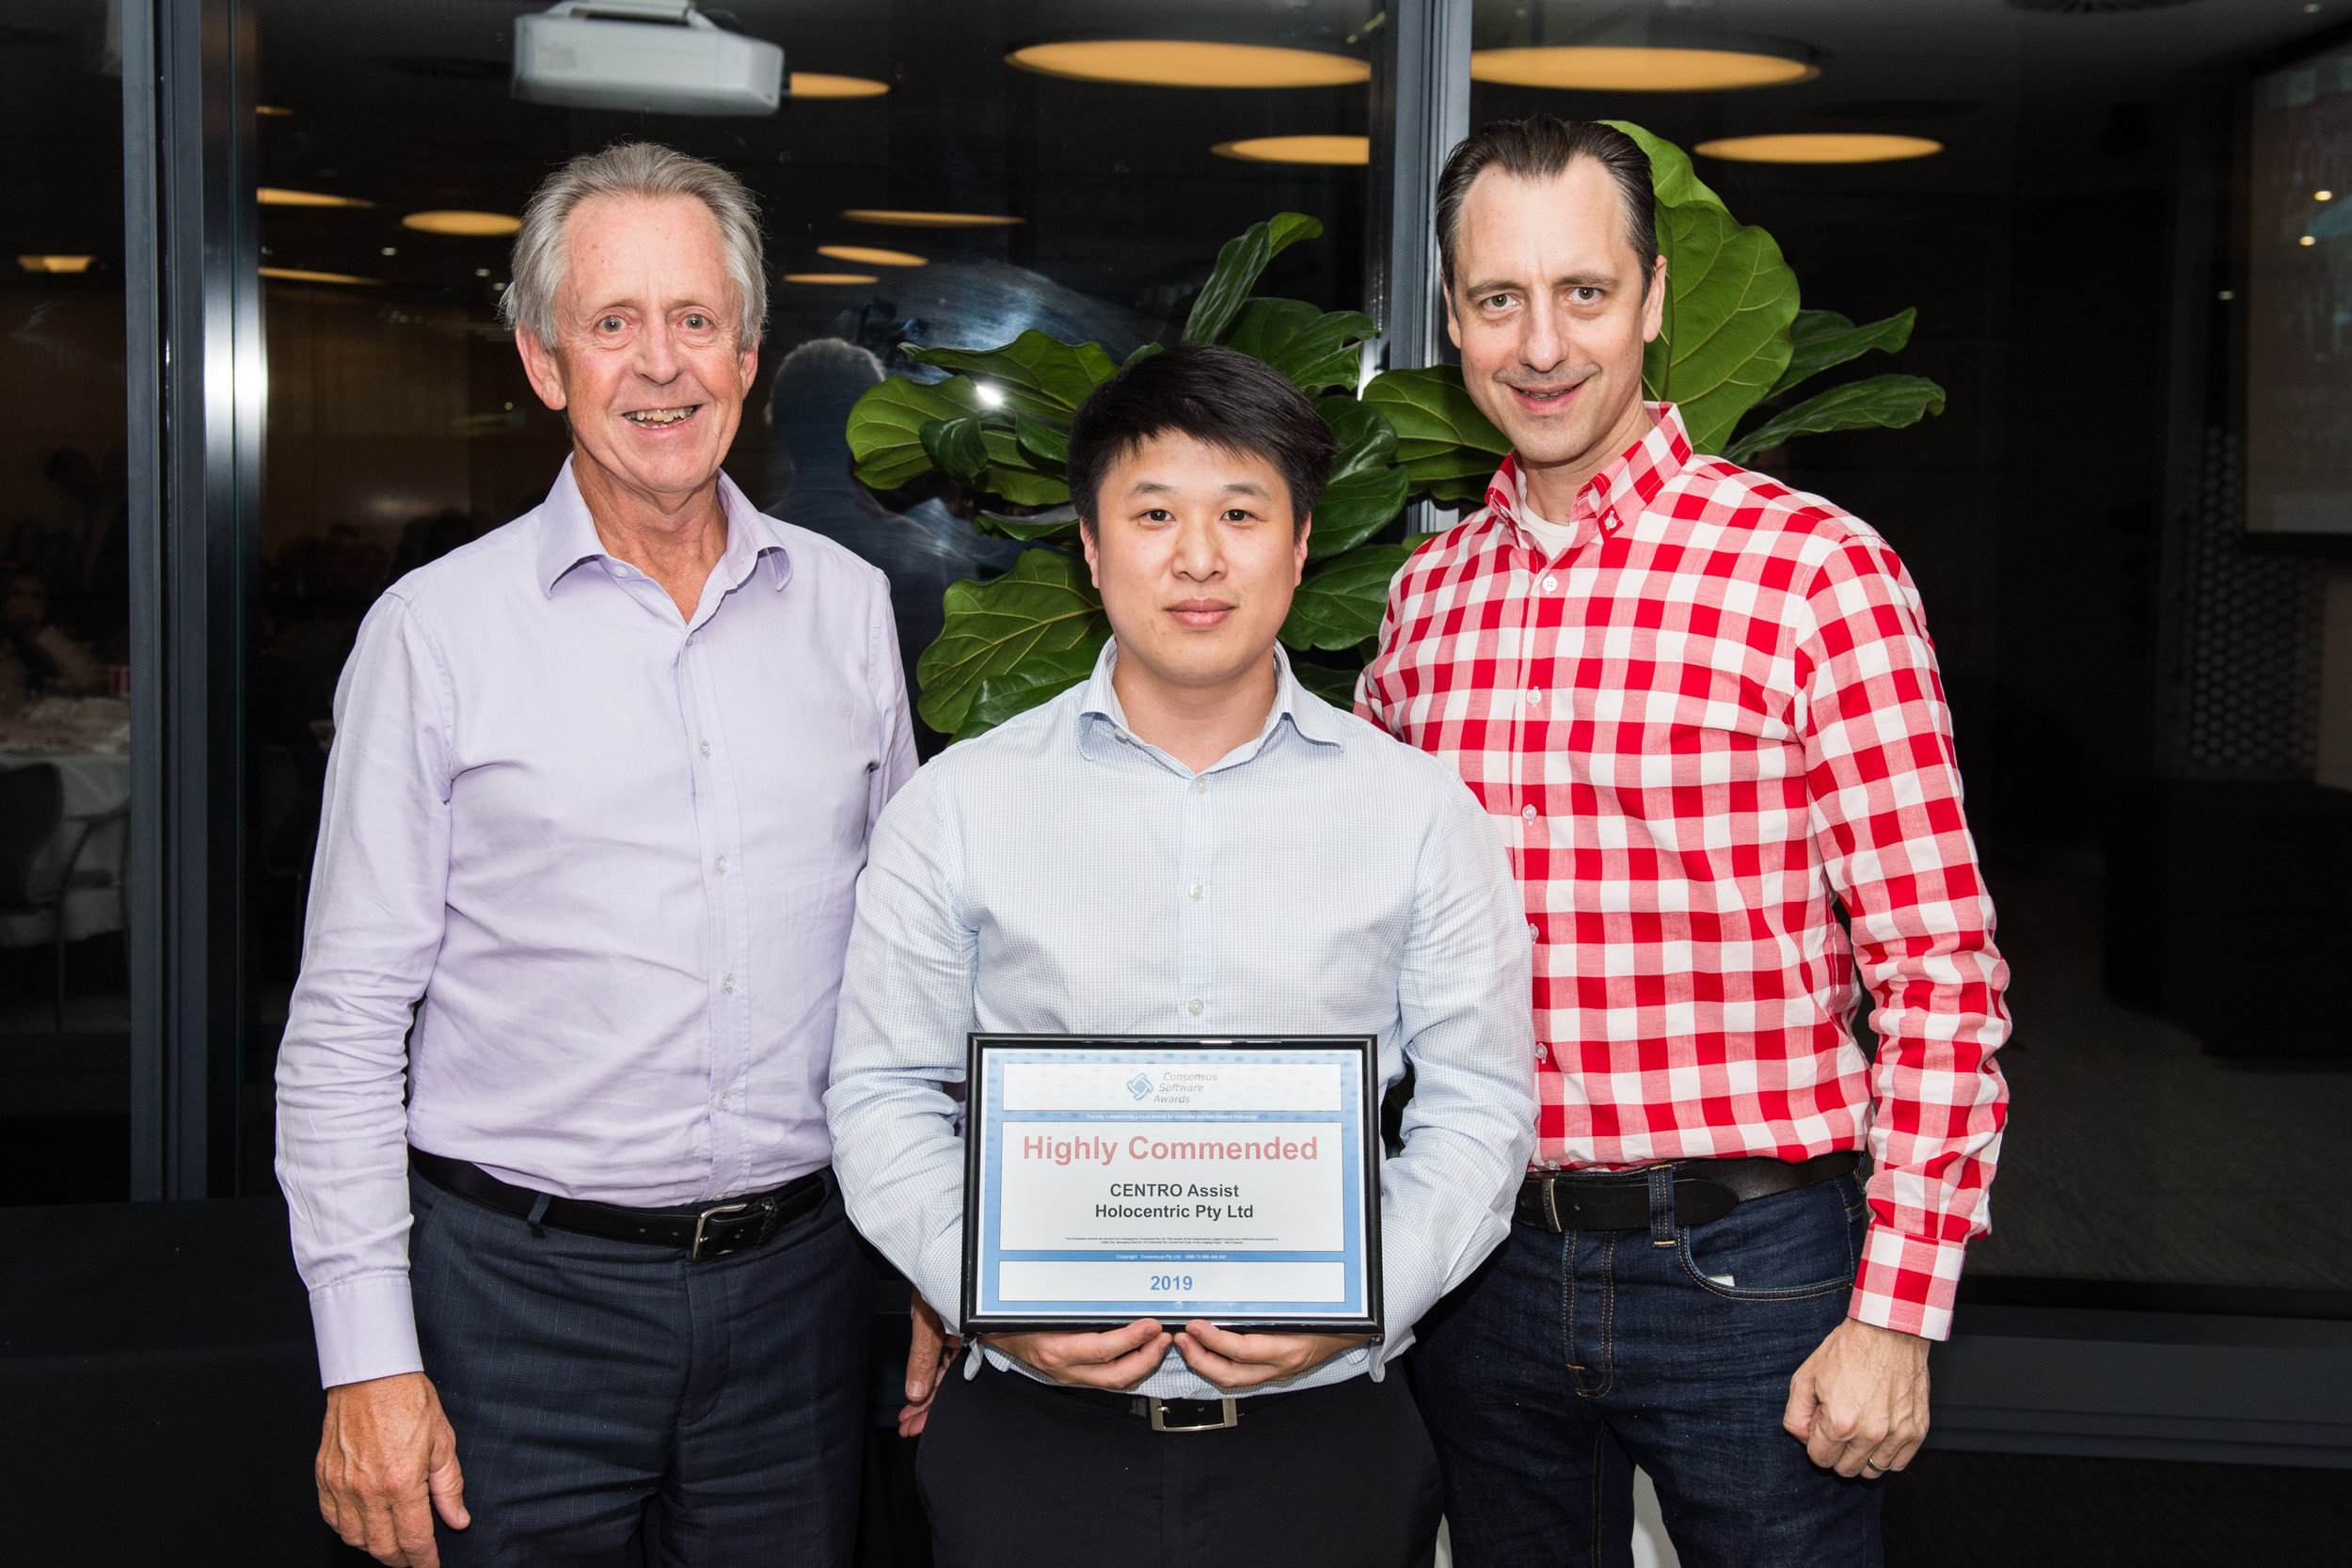 Chief Executive Officer Bruce Nixon, Head of Disability Solutions Walter Tran, Chief Technology Officer Derek Renouf